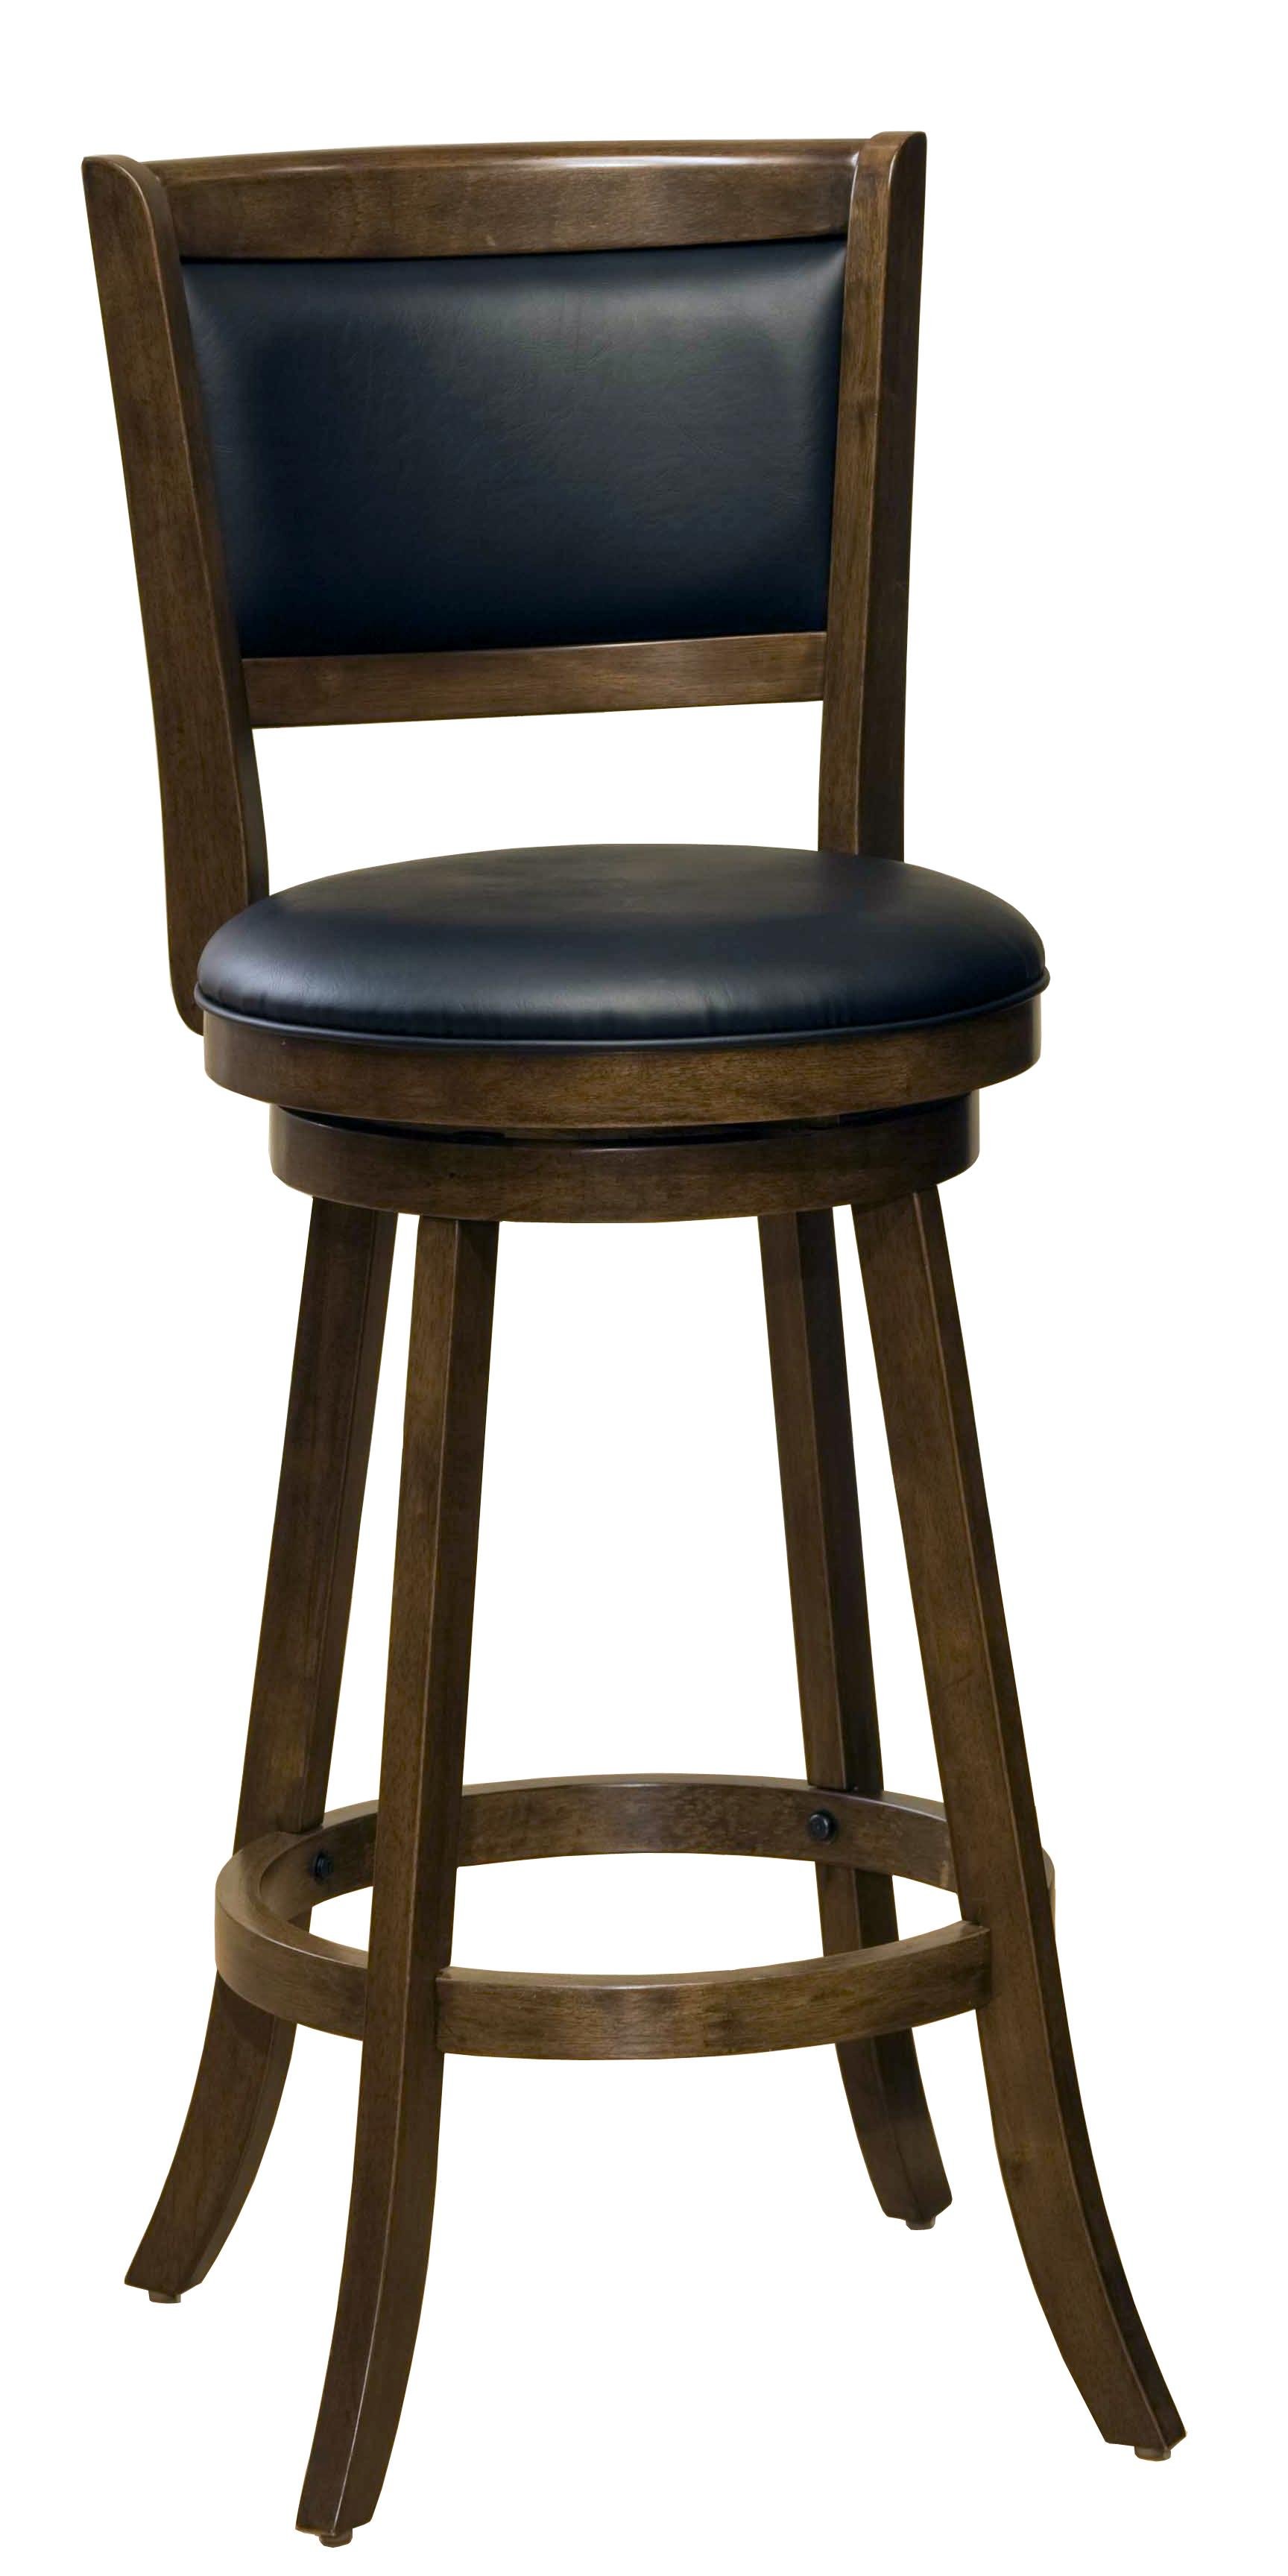 Hillsdale Wood Stools 4472 826 24 Quot Counter Height Dennery